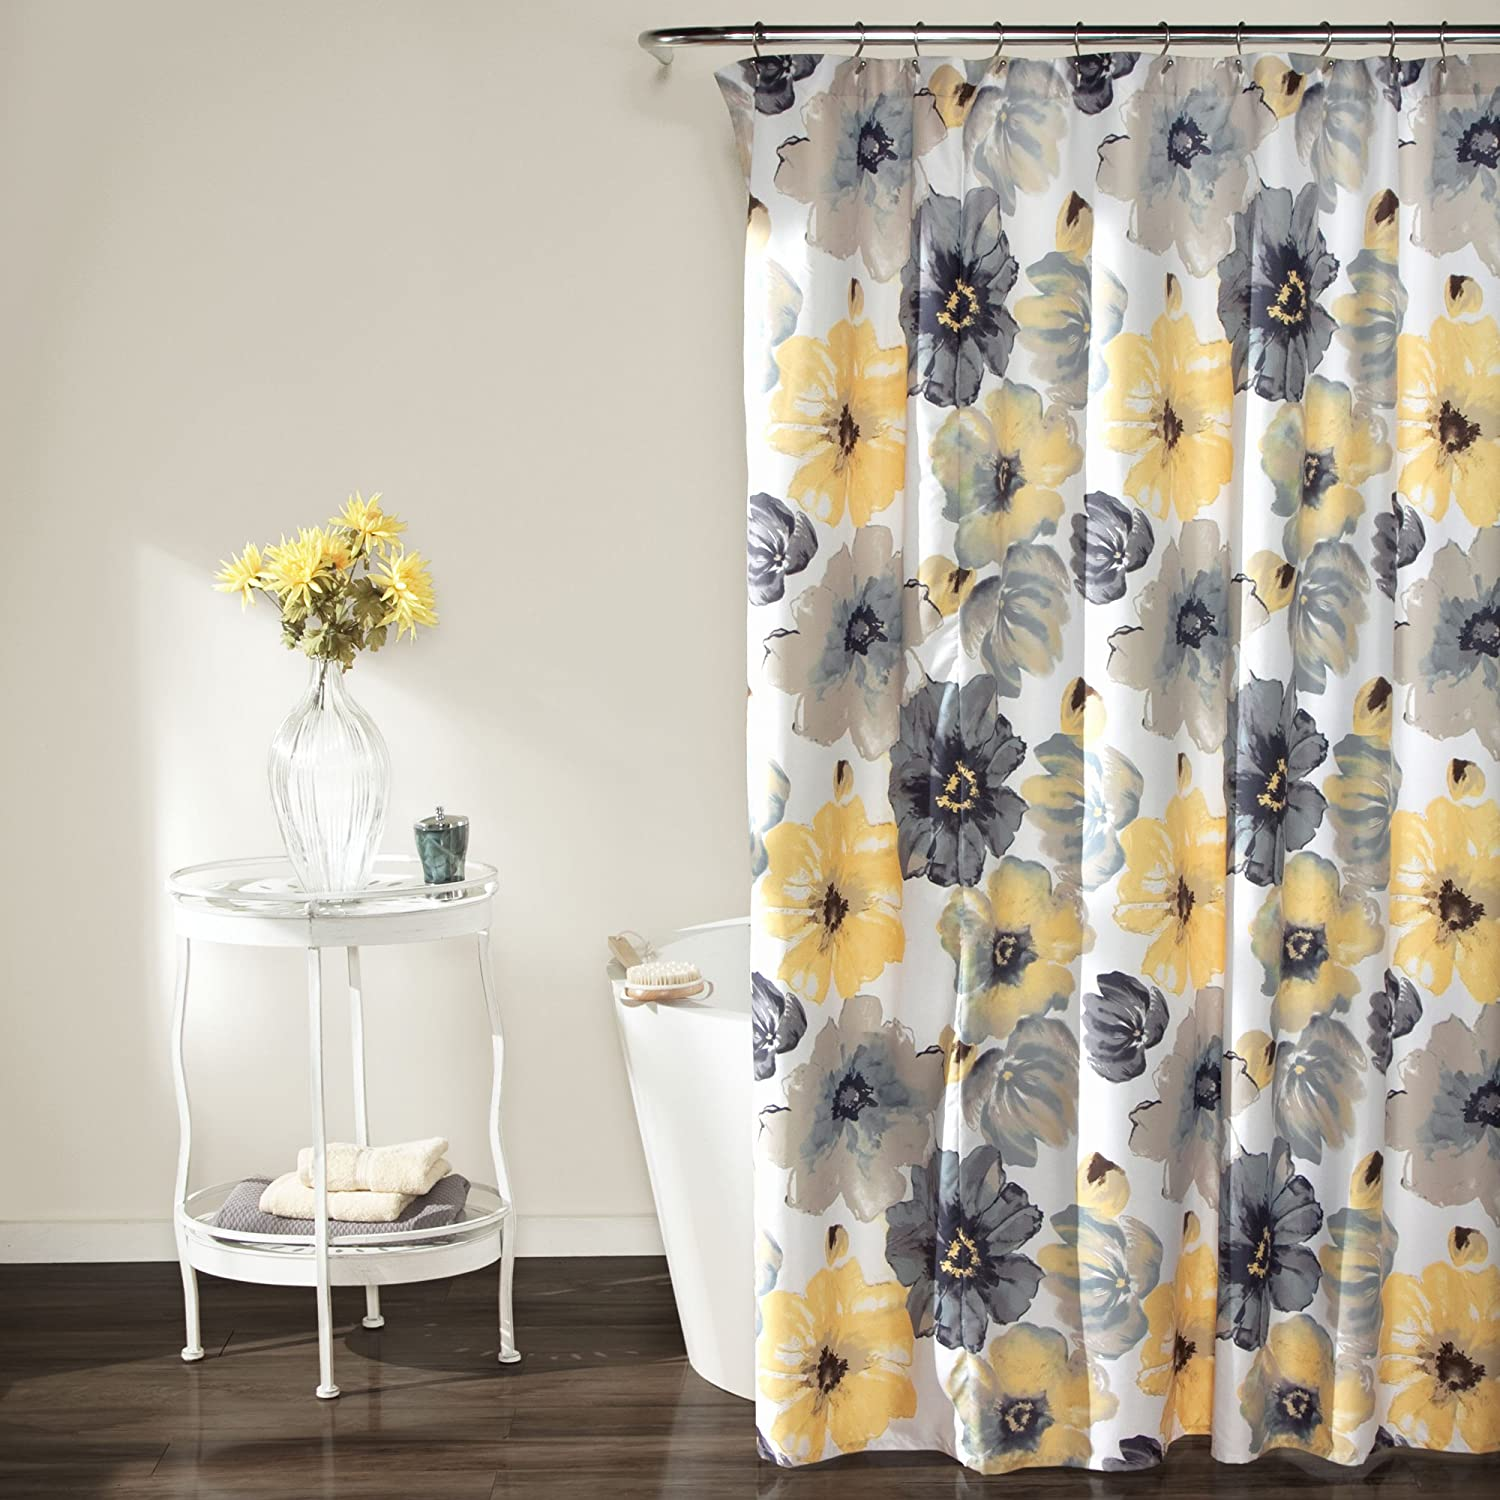 "Lush Decor Leah Shower Curtain - Bathroom Flower Floral Large Blooms Fabric Print Design, 72"" x 72"", Yellow/Gray: Home & Kitchen"